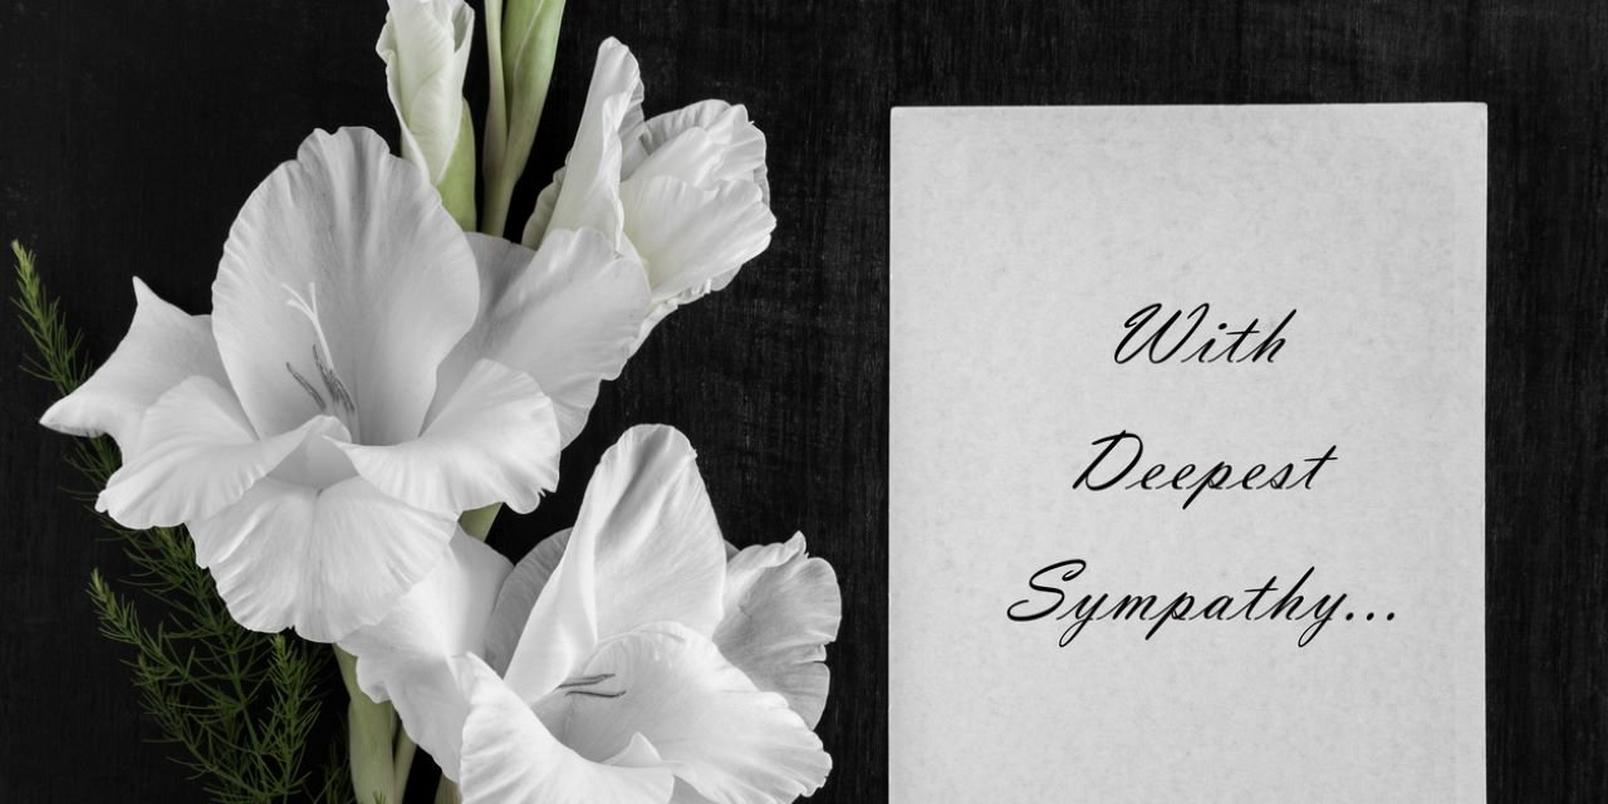 condolence-messages-for-a-sympathy-card-3